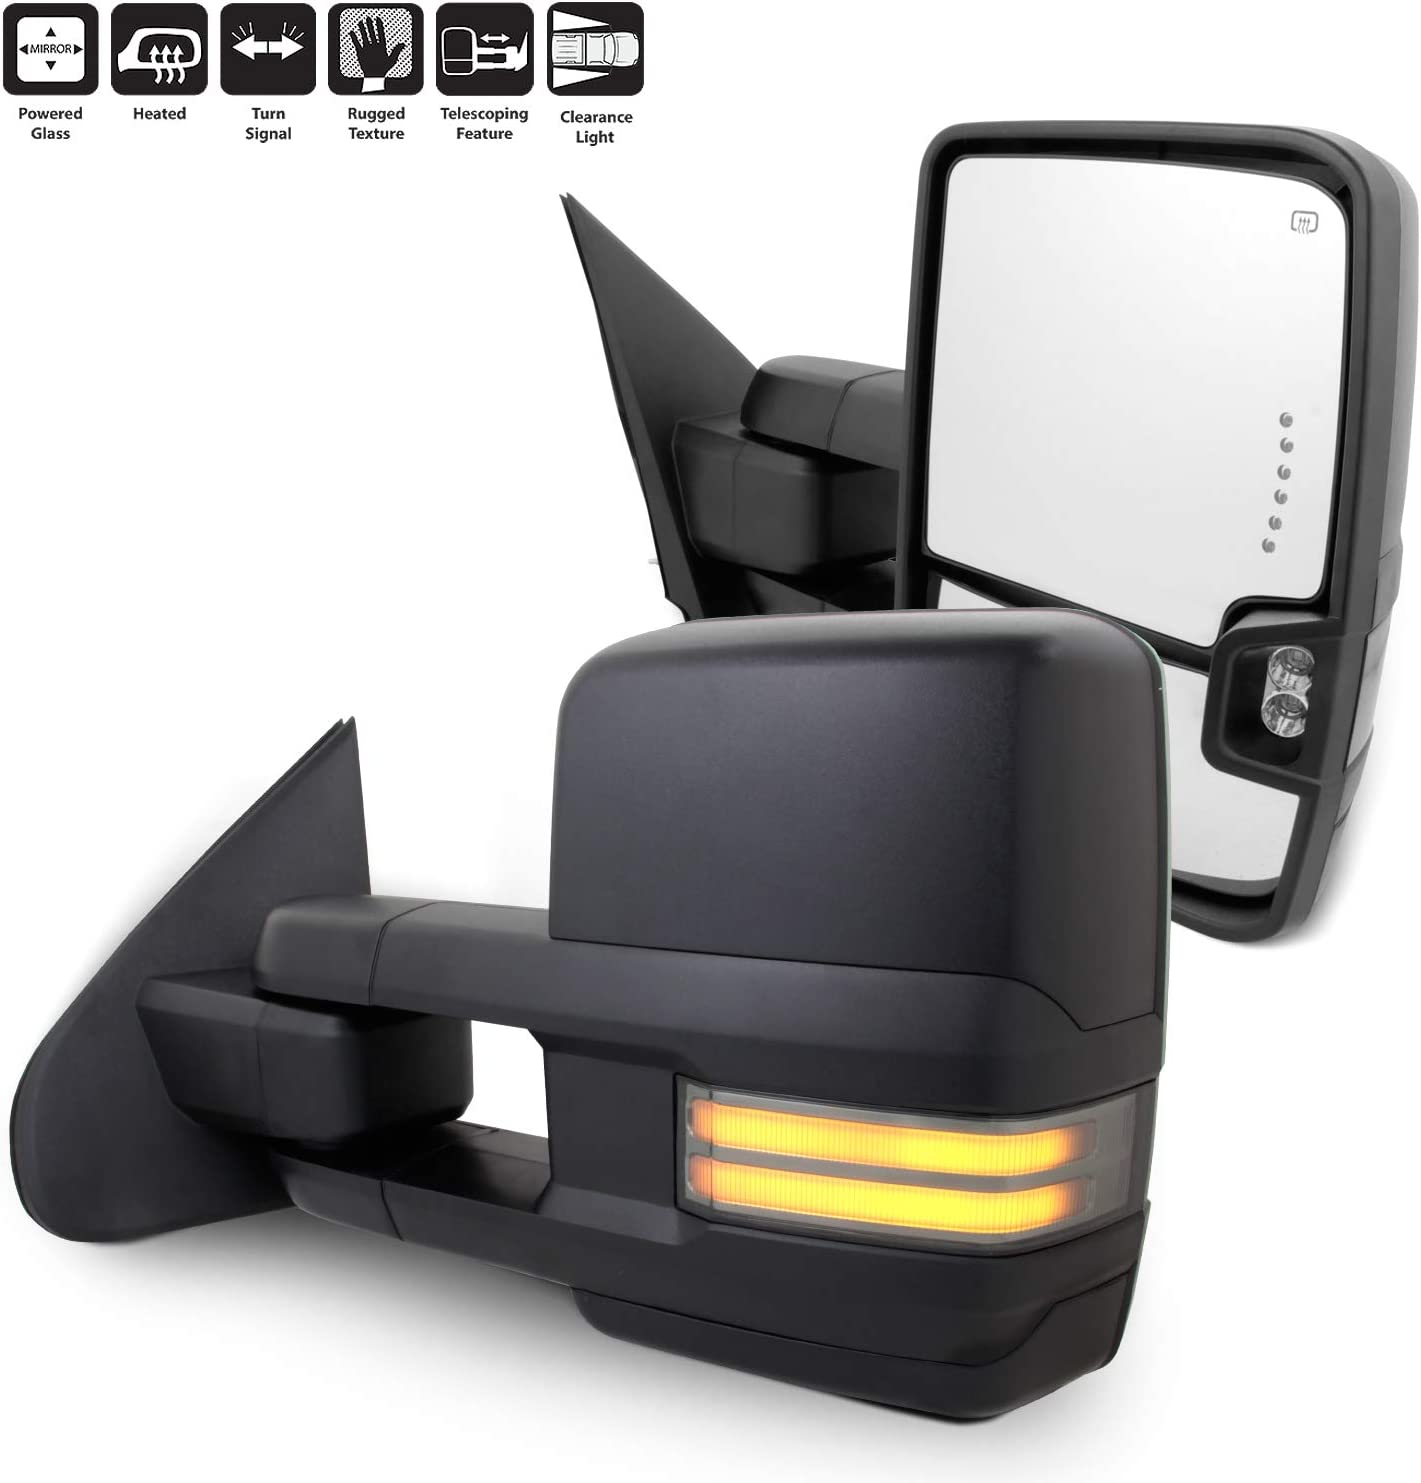 Turn Signals Puddle Lights Heated Powered Glass Paragon Telescopic Towing Mirrors for 2015-19 Ford F150 Black Pair Set